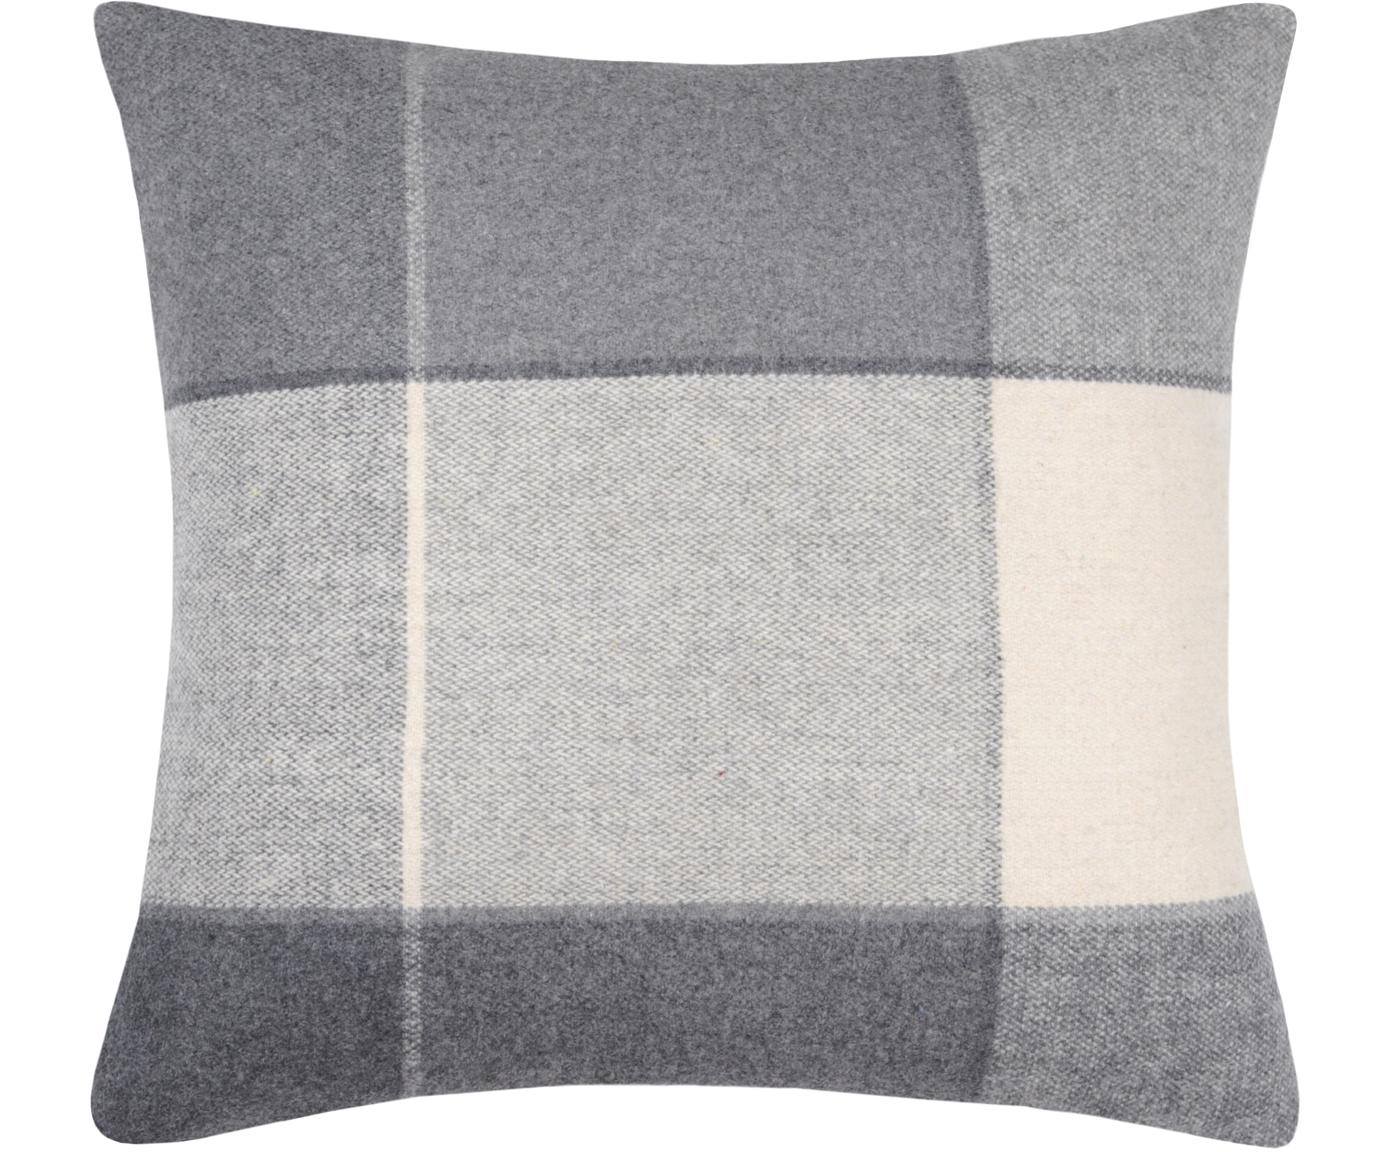 Kissenhülle Courchevel, 95% Polyester, 5% Wolle, Grau, Creme, 40 x 40 cm